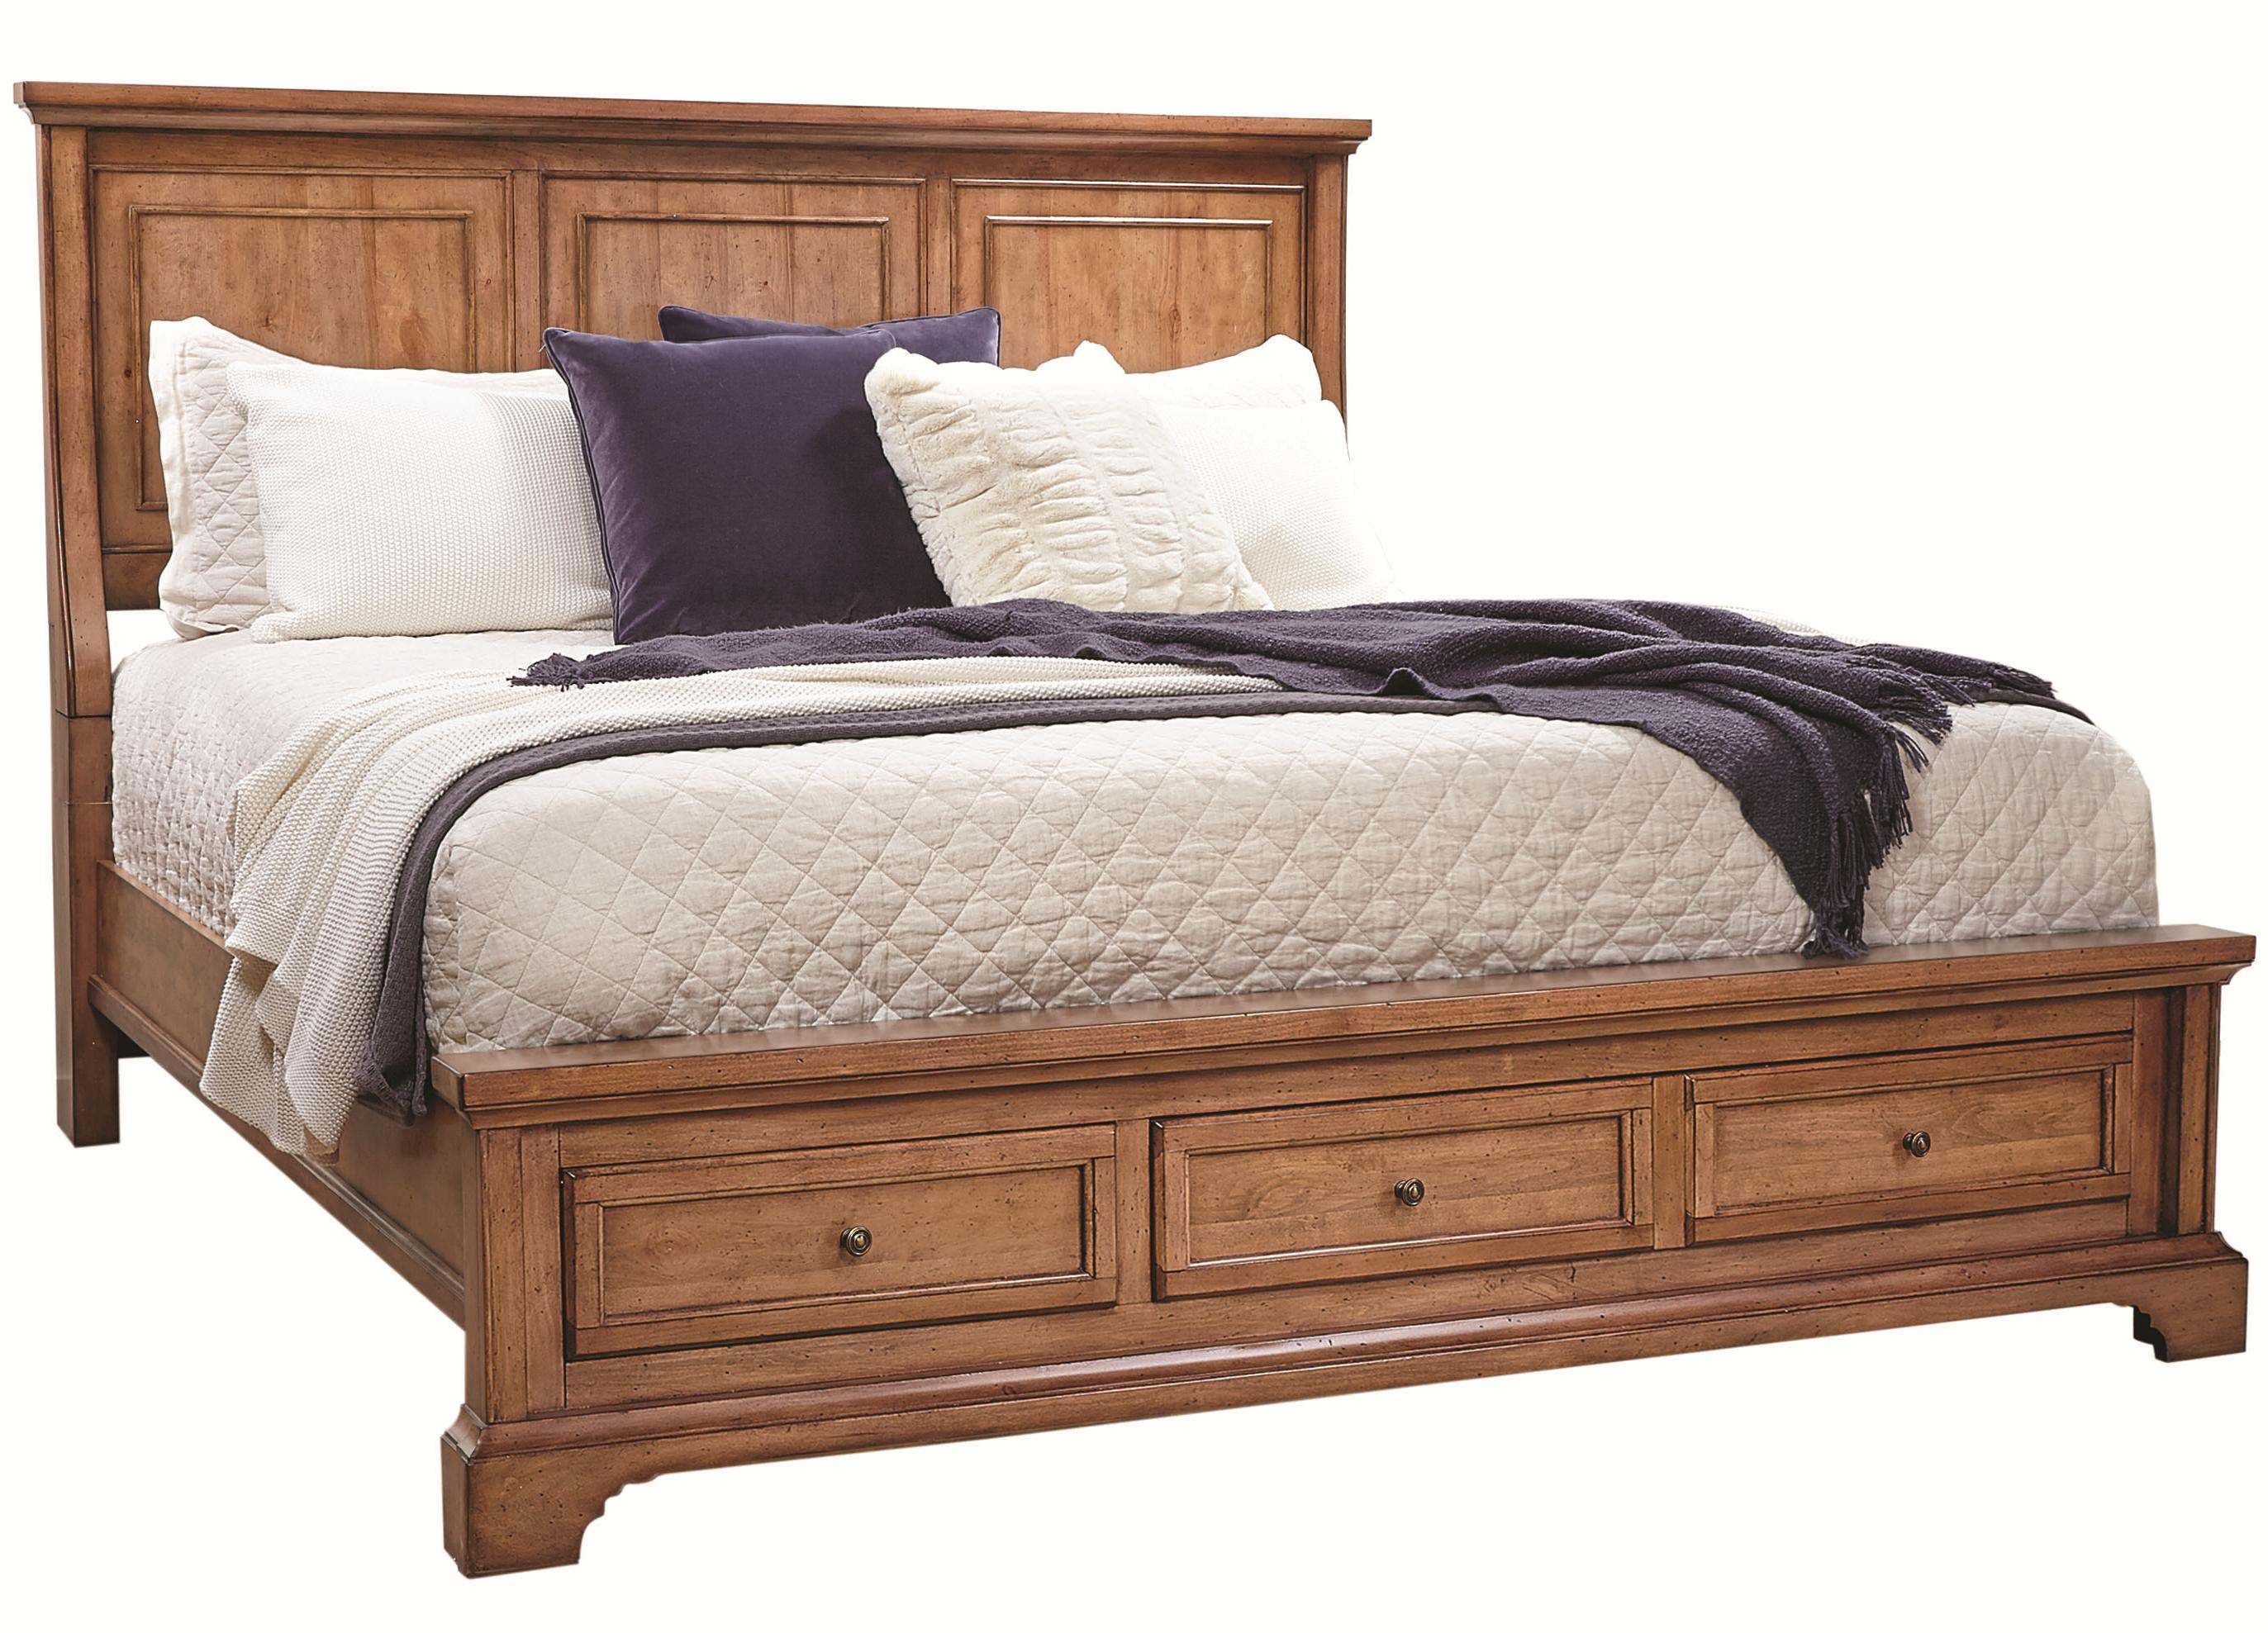 Alder Creek King Panel Storage Bed by Aspenhome at Fisher Home Furnishings